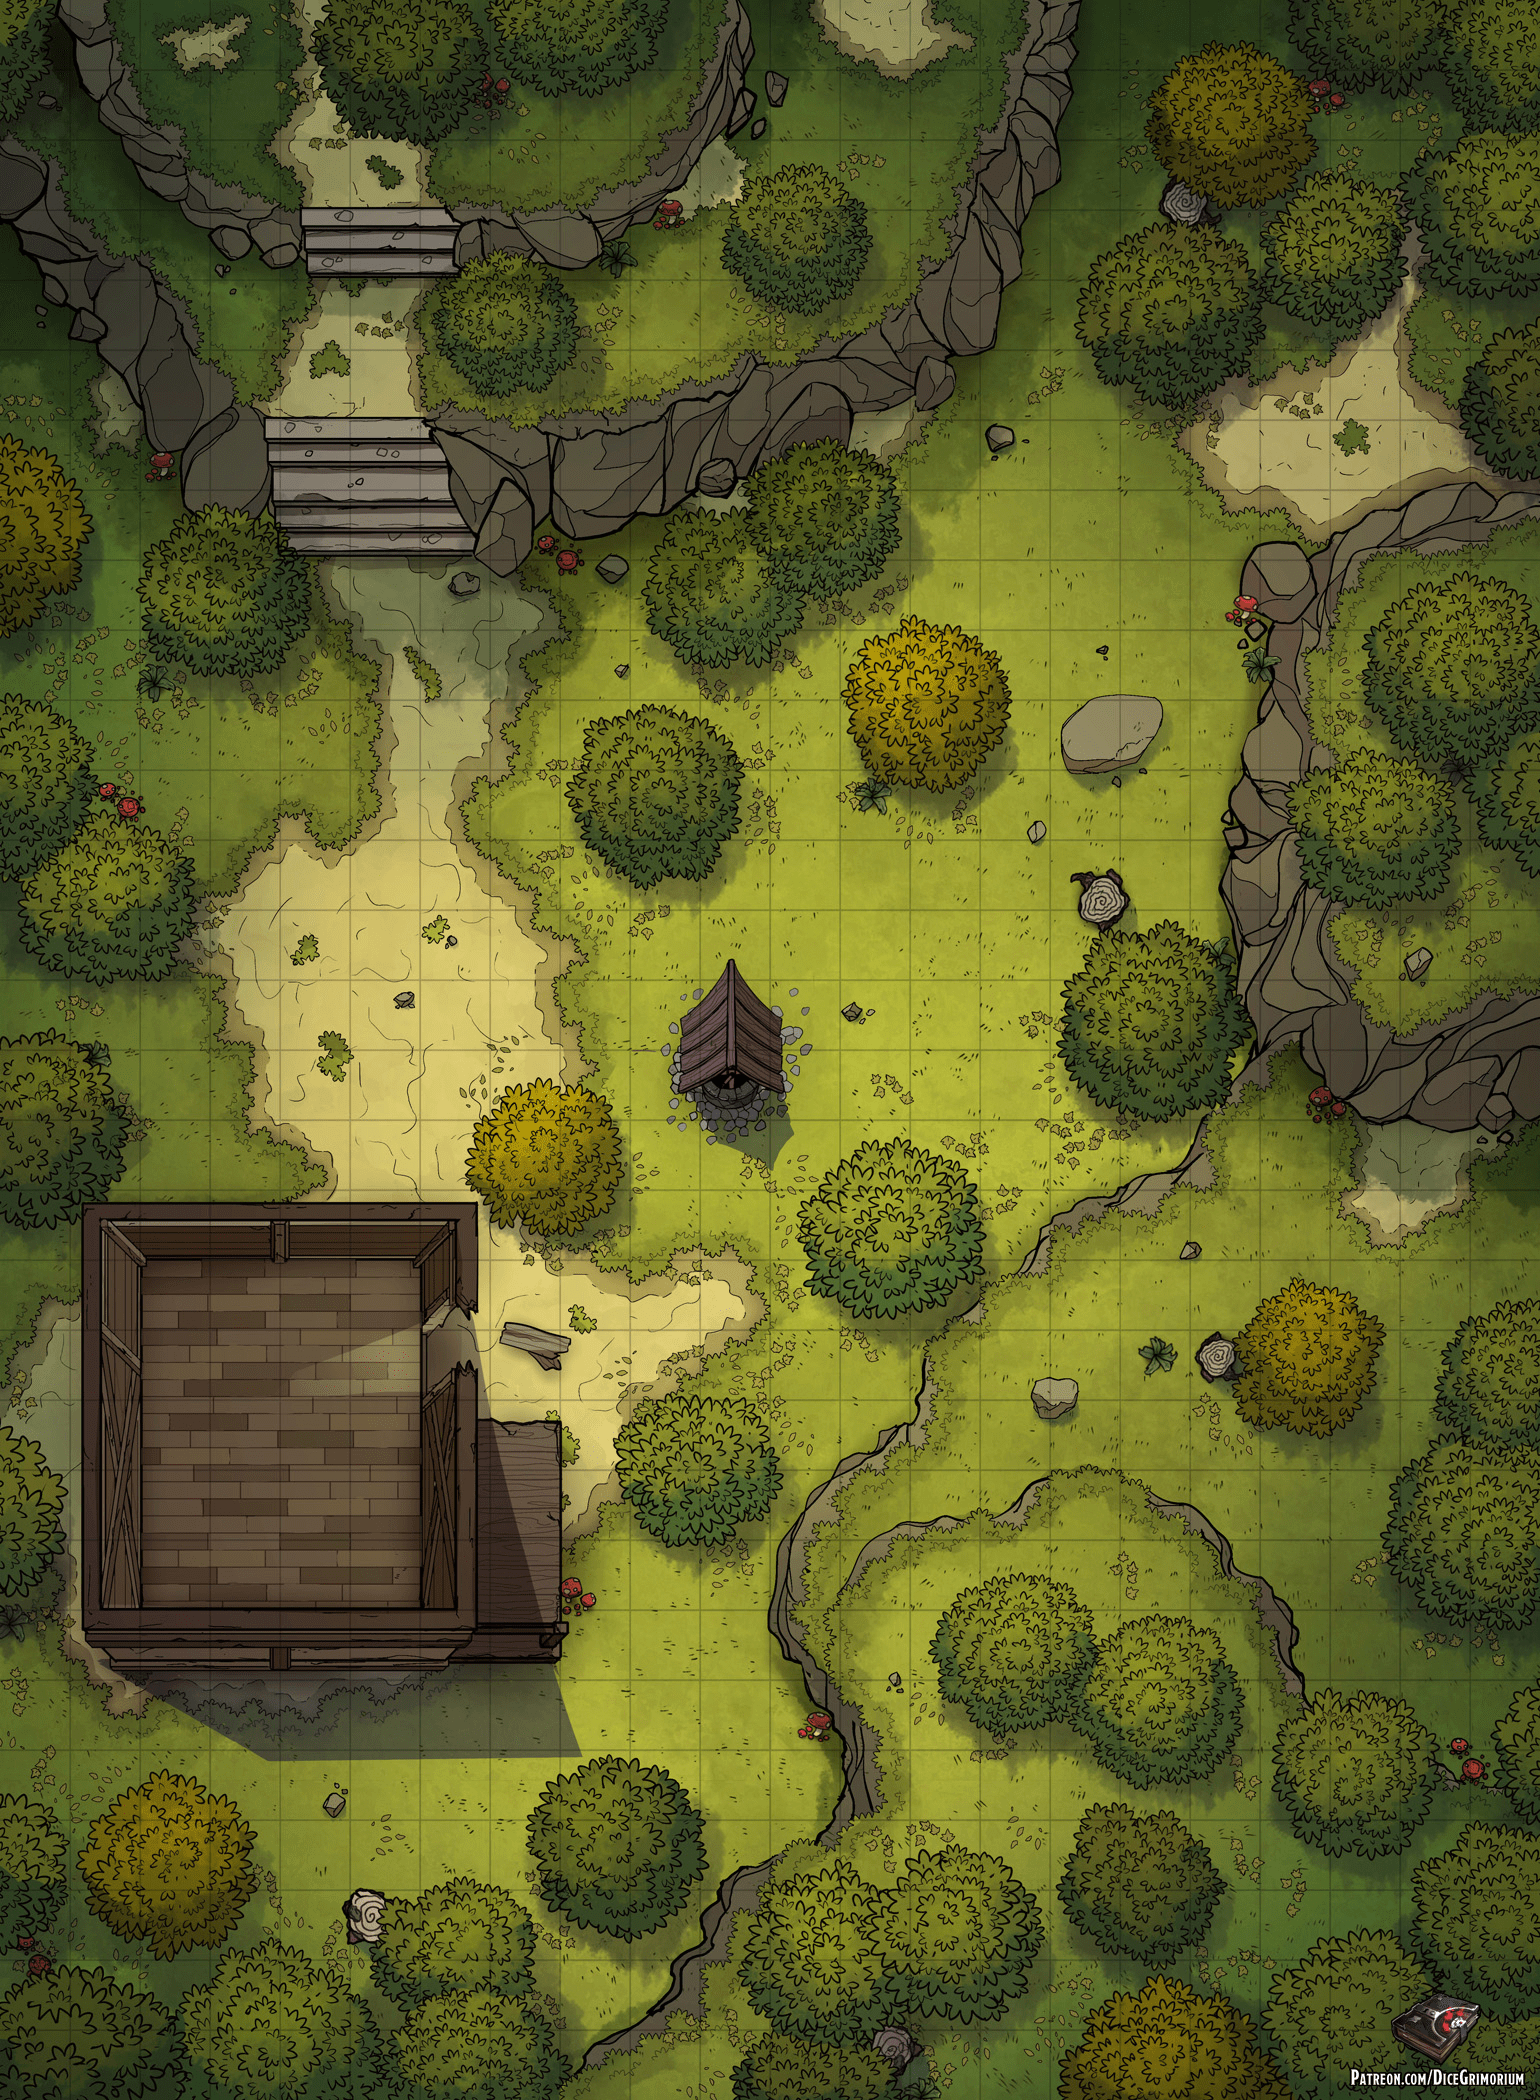 Forest Dnd Map : forest, Shack, Forest, Battle, 22x30, Roll20